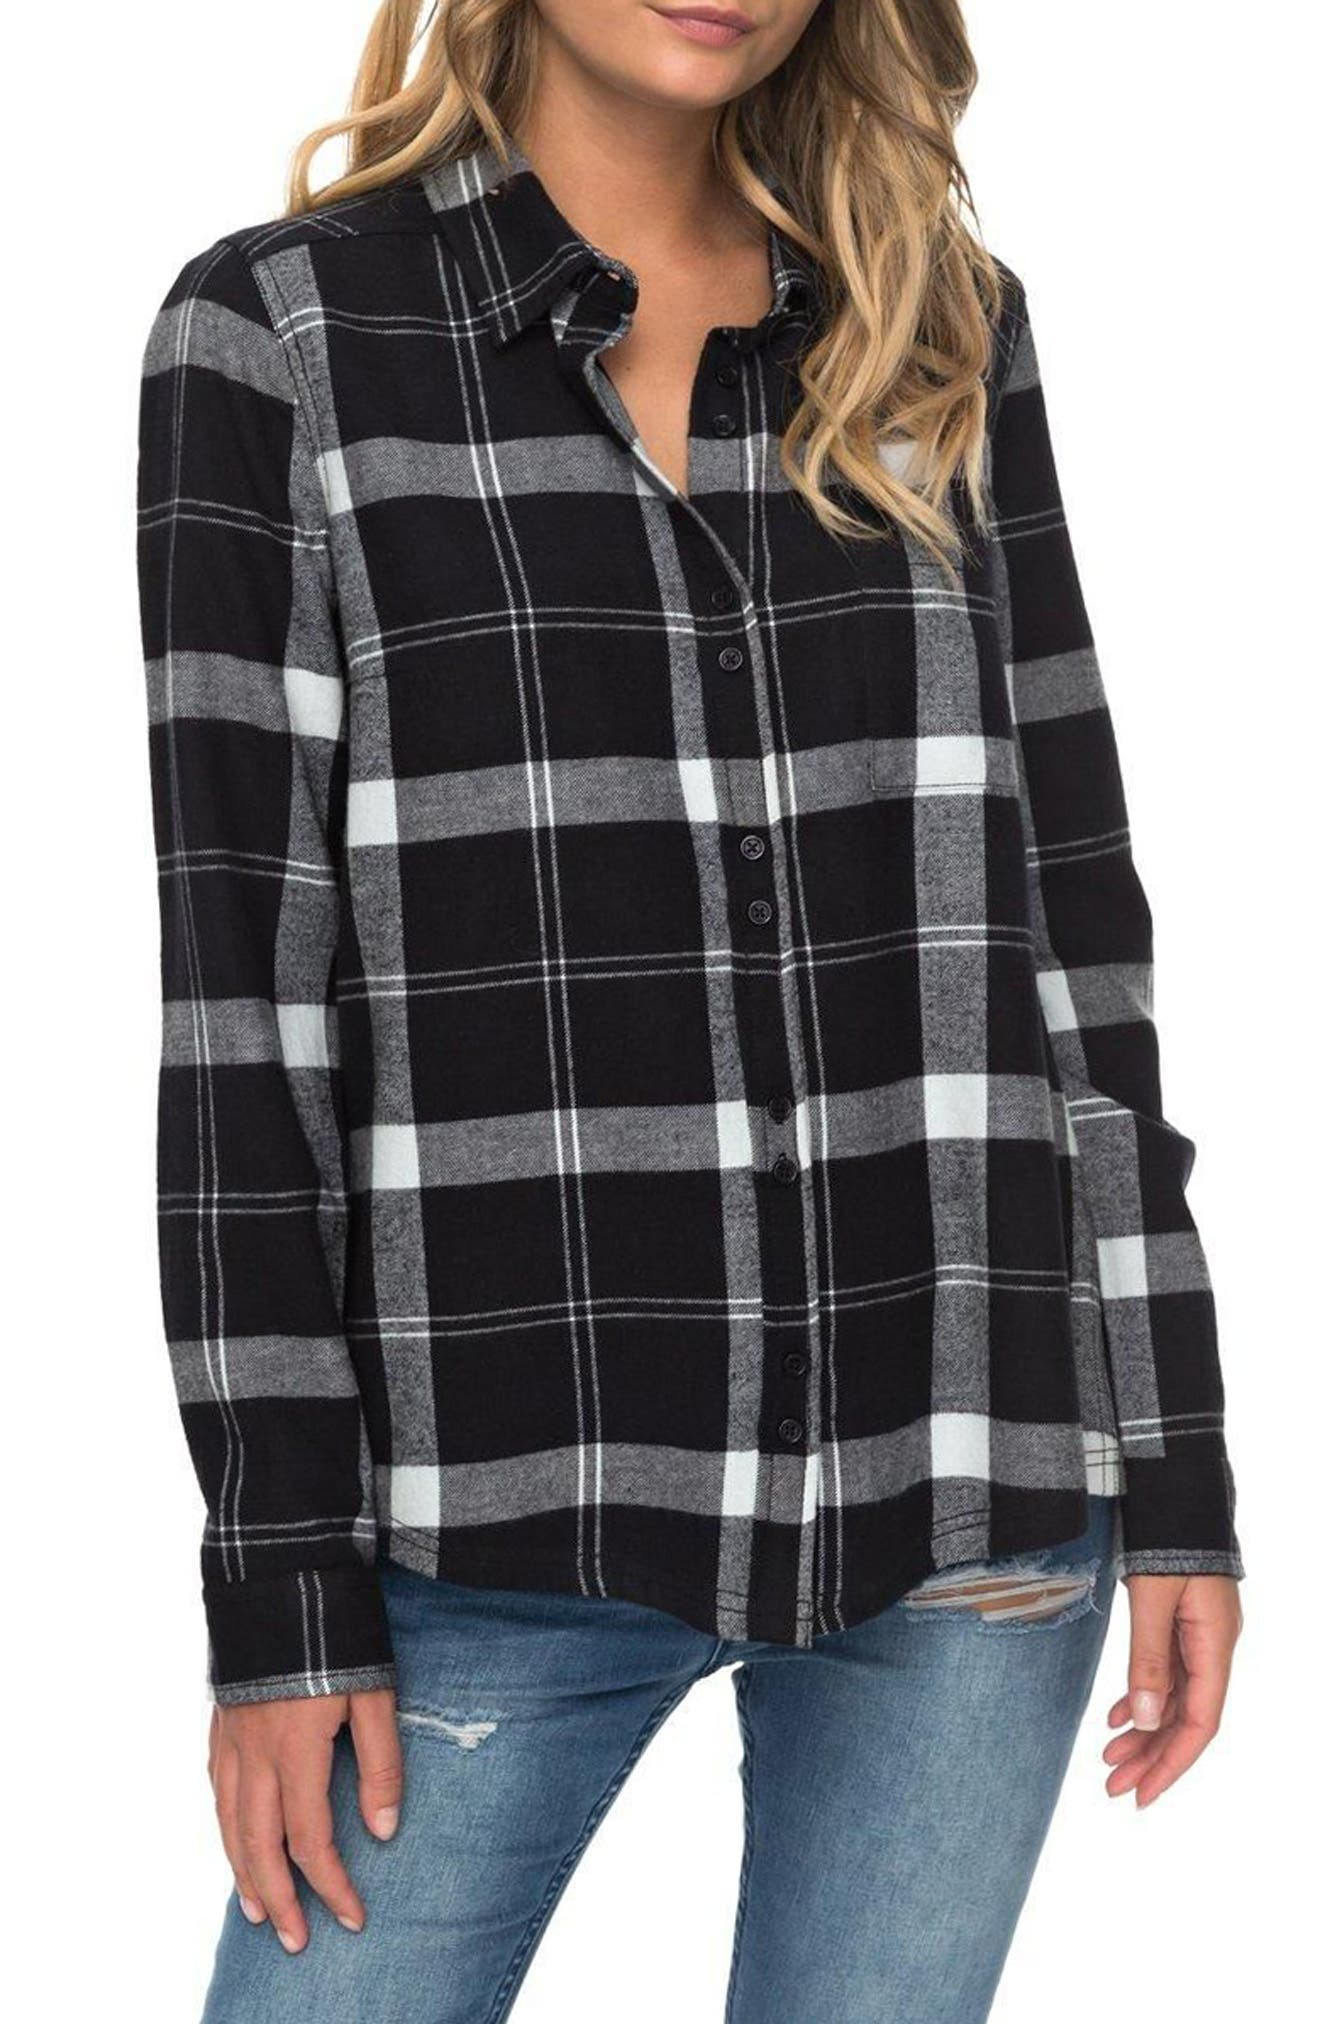 Heavy Feelings Plaid Cotton Shirt,                             Main thumbnail 1, color,                             Checked Plaid Combo Anthracite